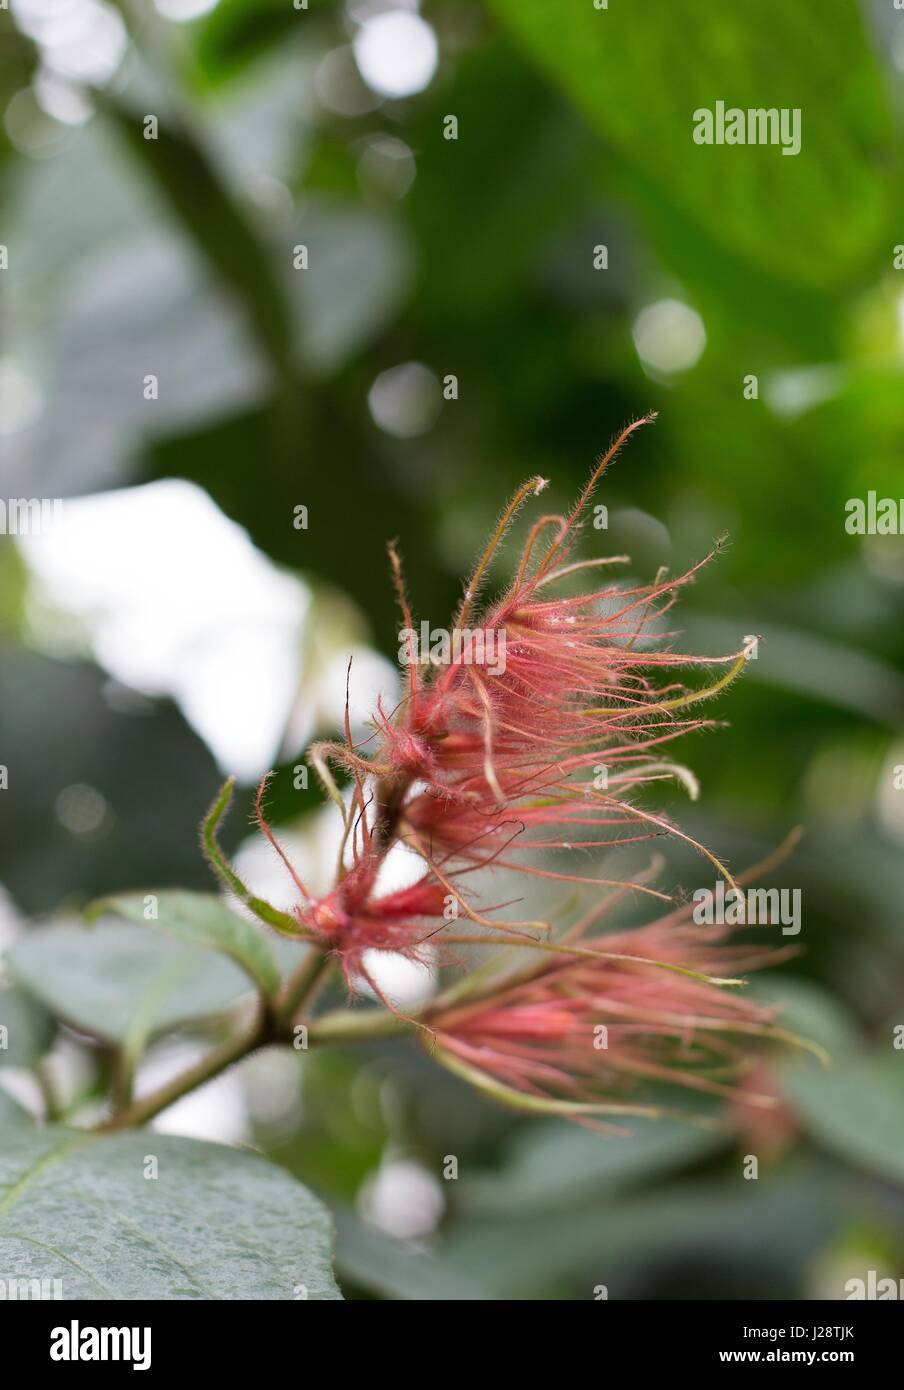 A wispy pink flower. - Stock Image